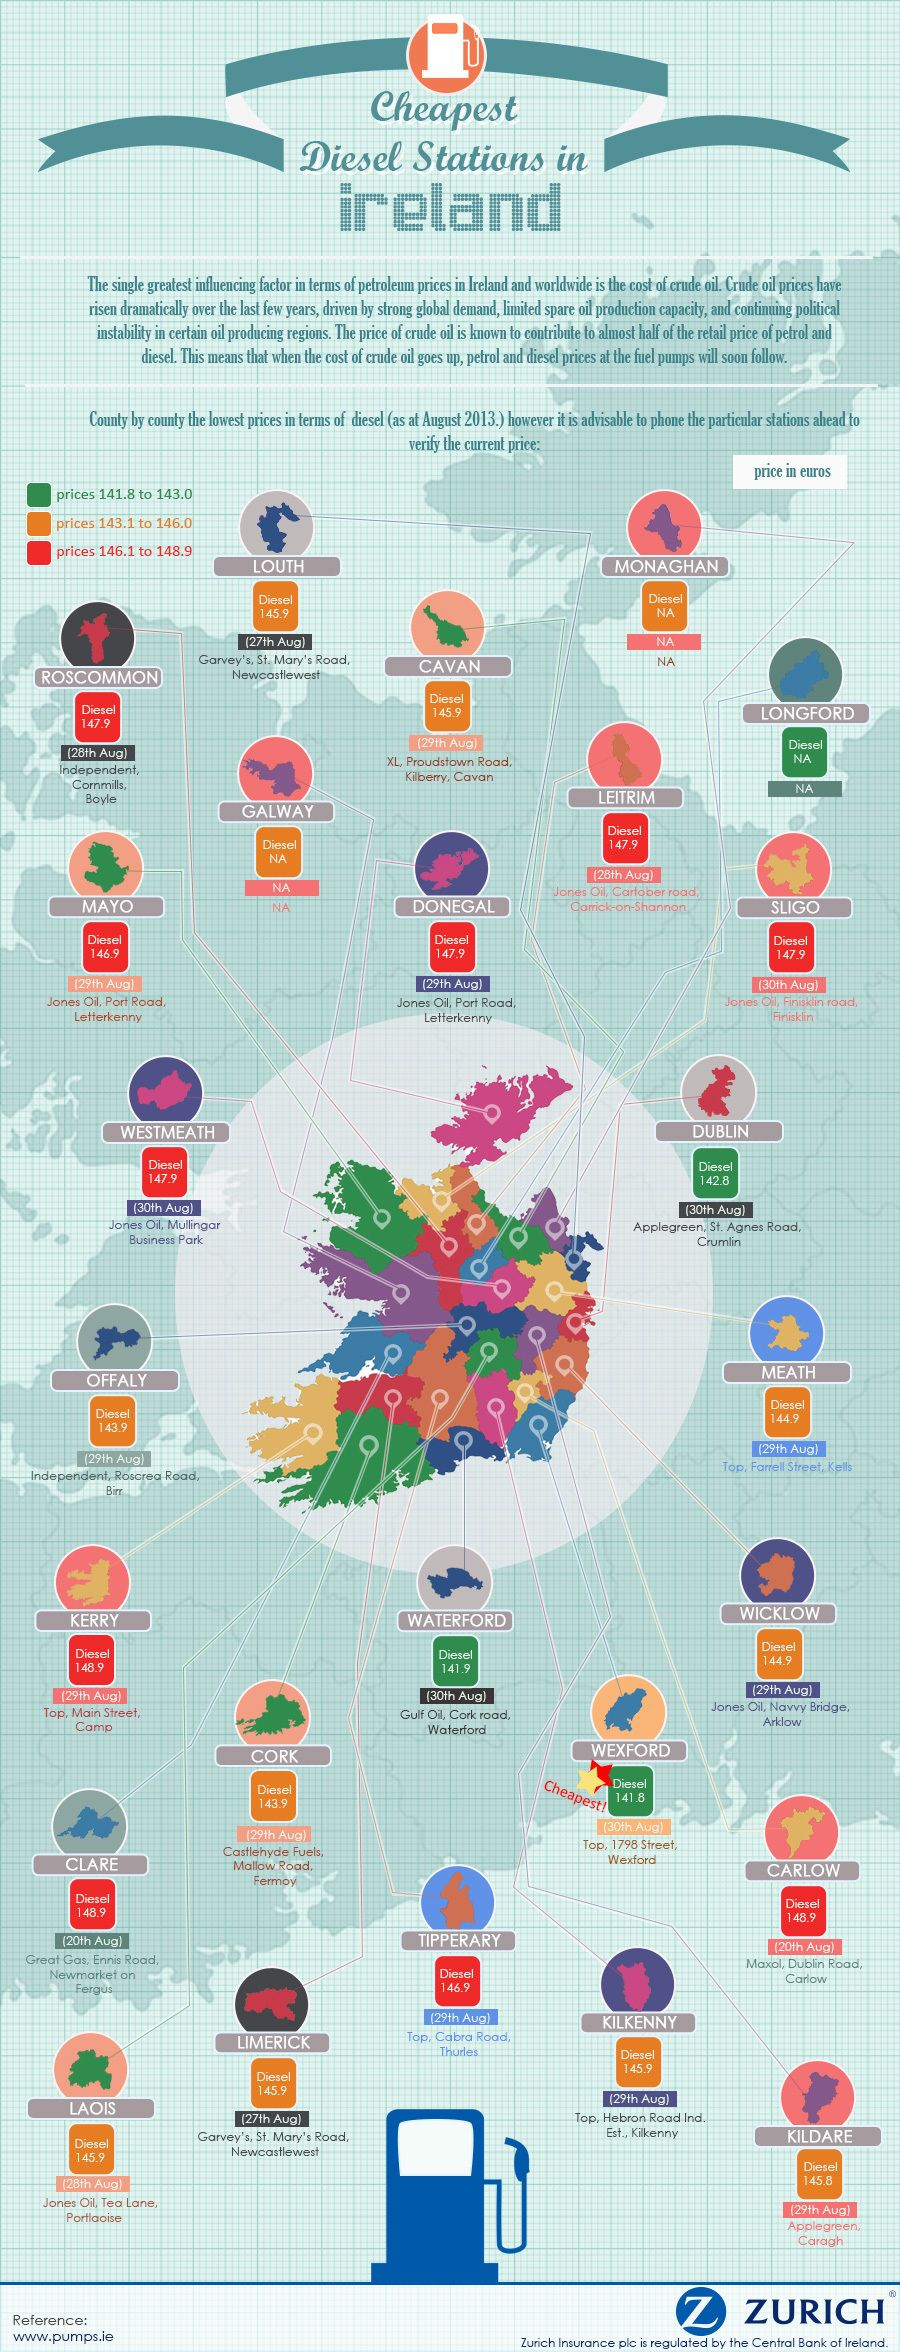 Cheapest Diesel Stations in Ireland [INFOGRAPHIC] diesel